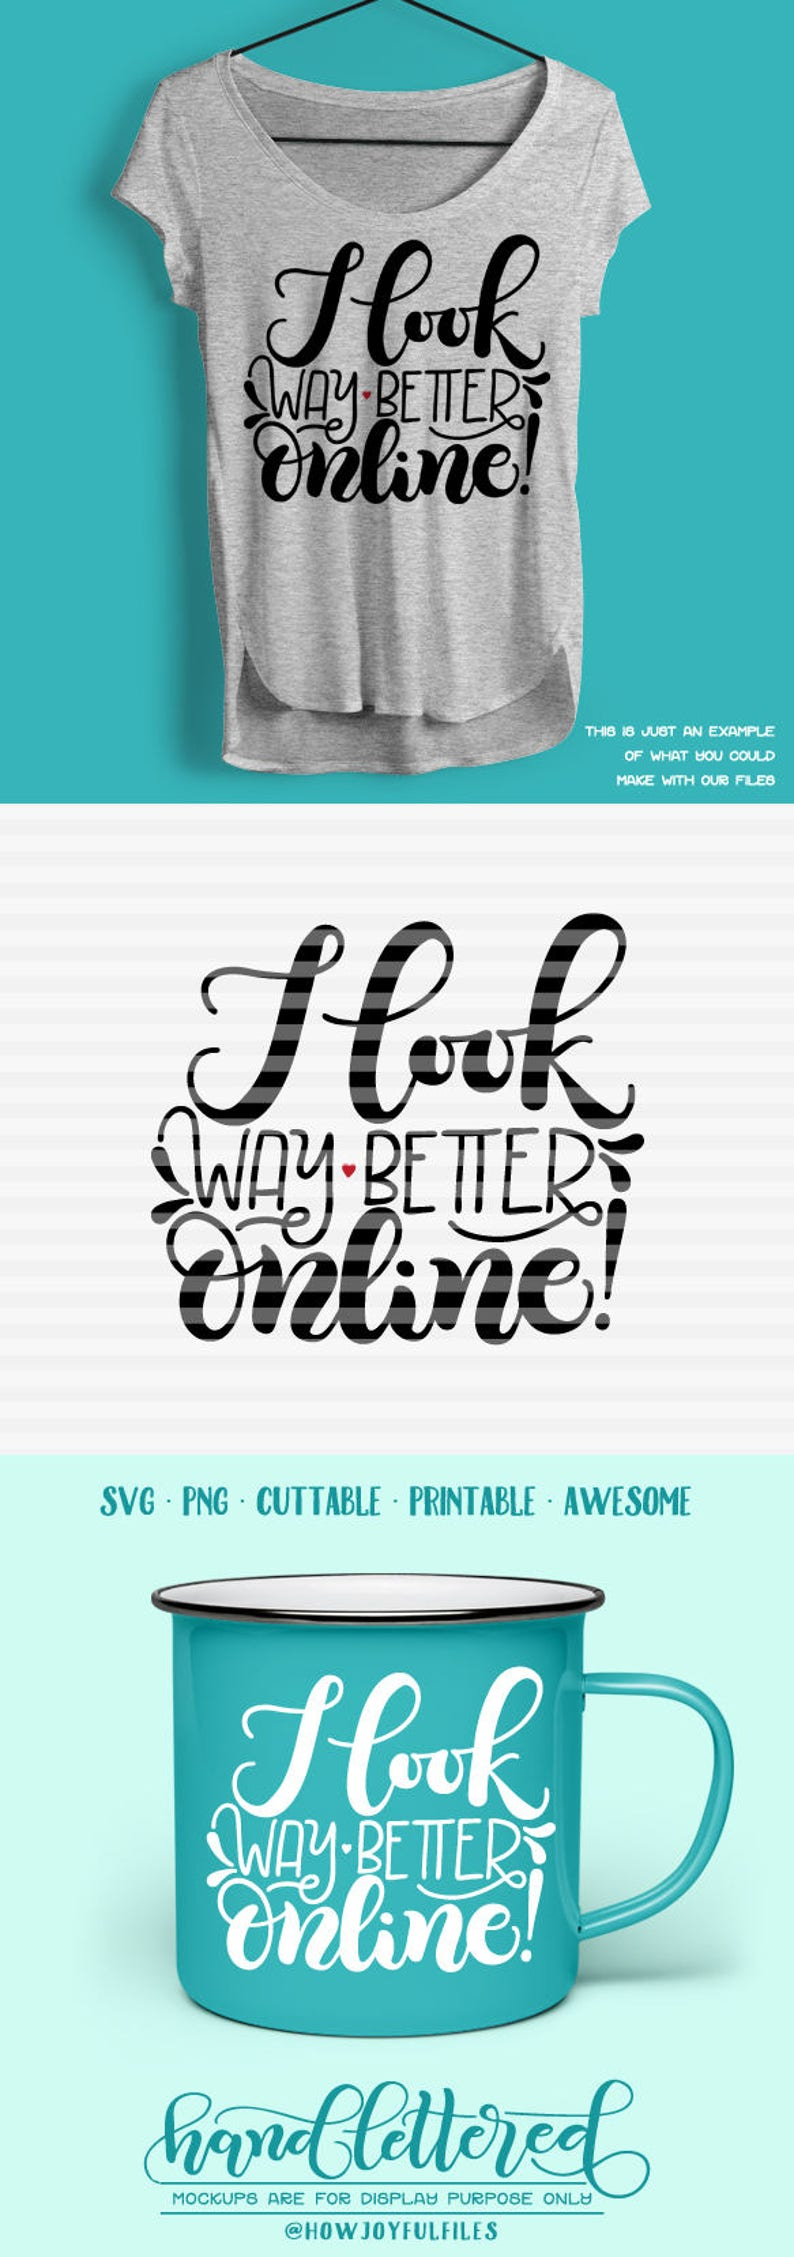 graphic overlay PDF I look way better online! DXF SVG hand drawn lettered cut file